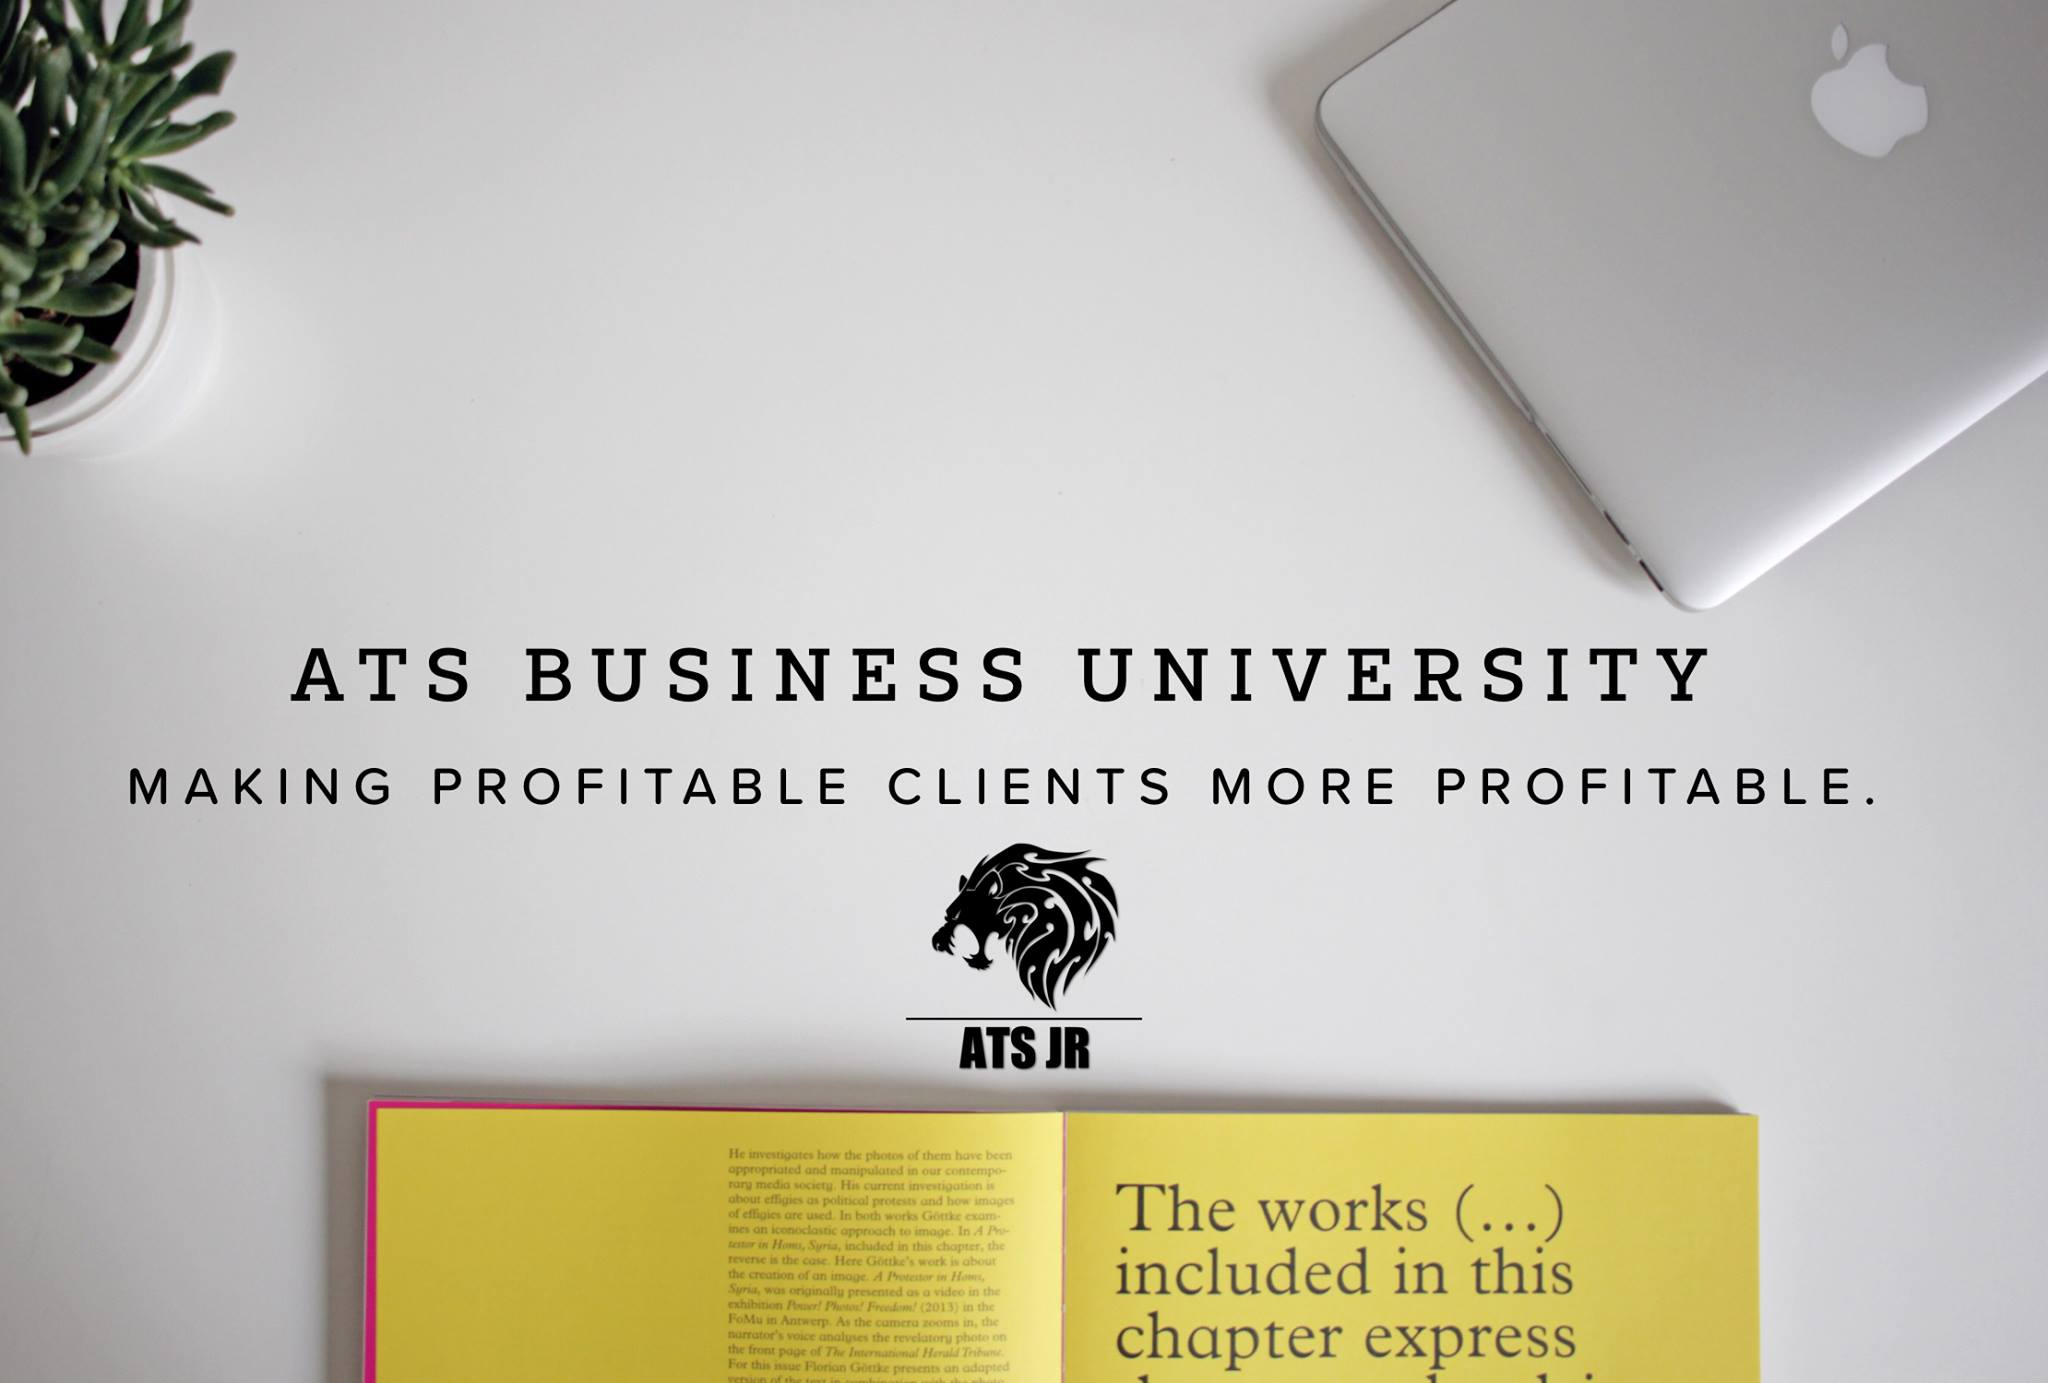 ATS Business University